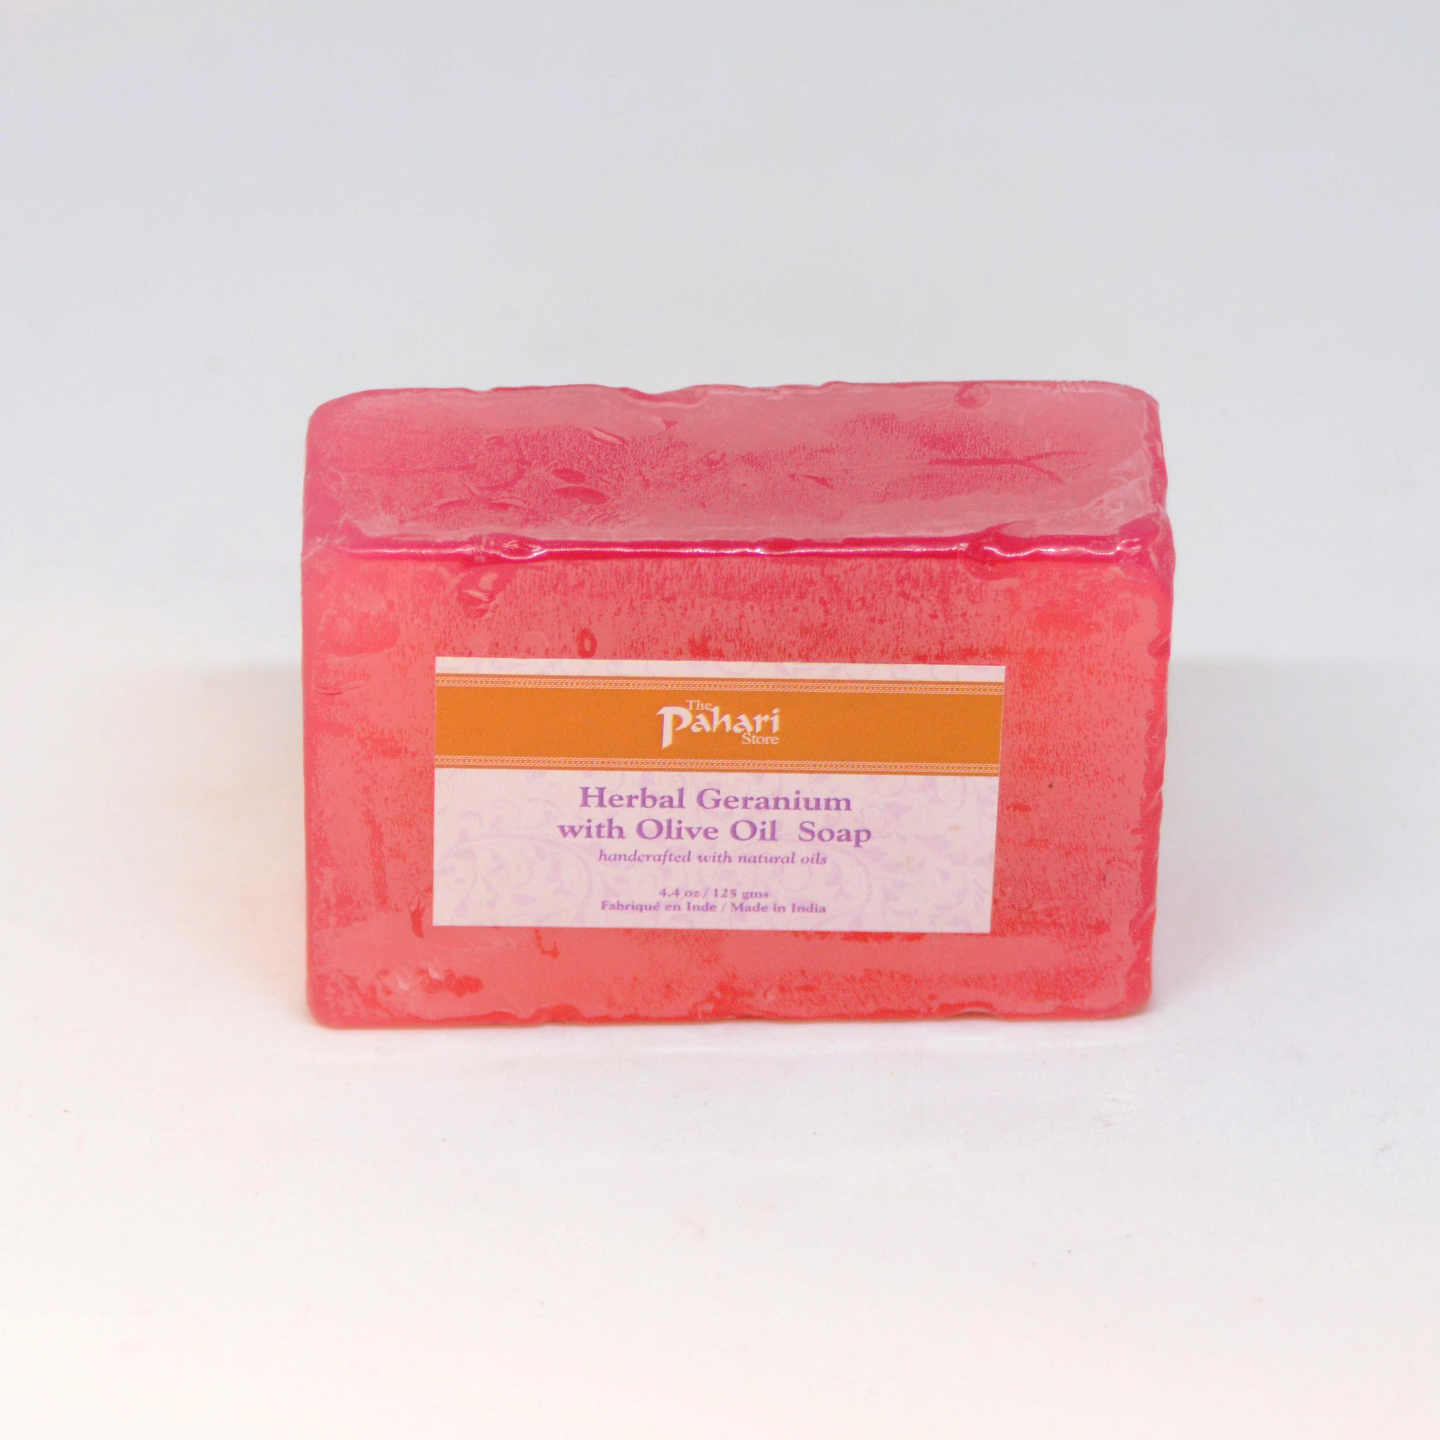 Herbal Geranium with Olive Oil Soap 125g